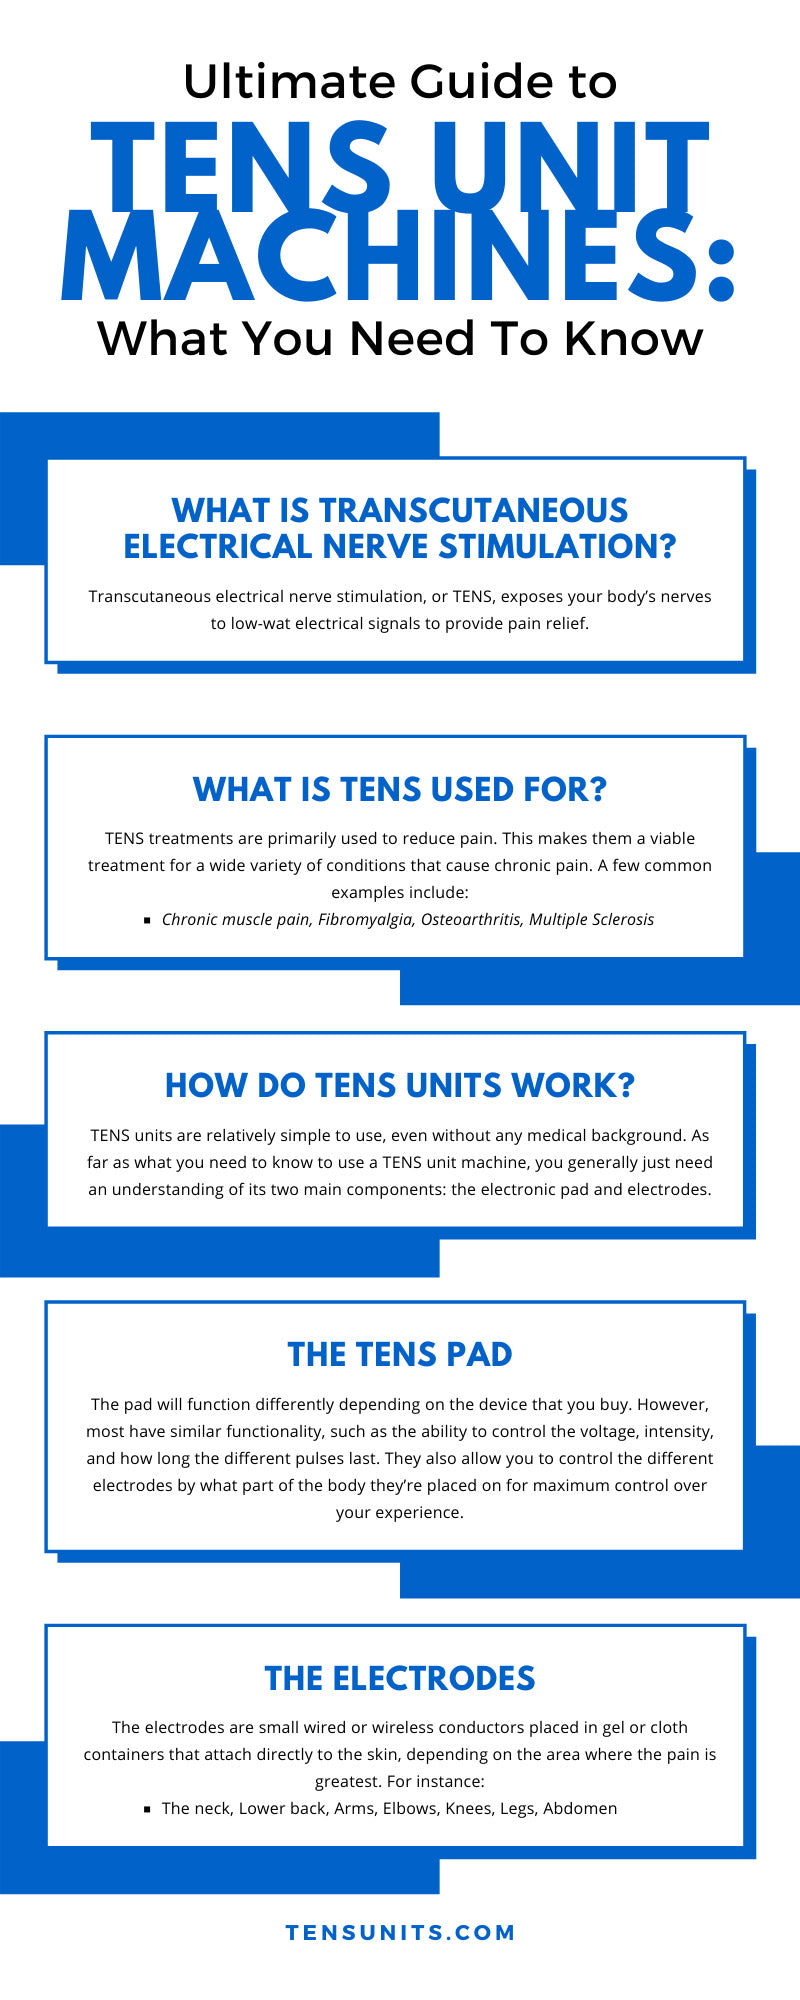 Ultimate Guide to TENS Unit Machines: What You Need To Know